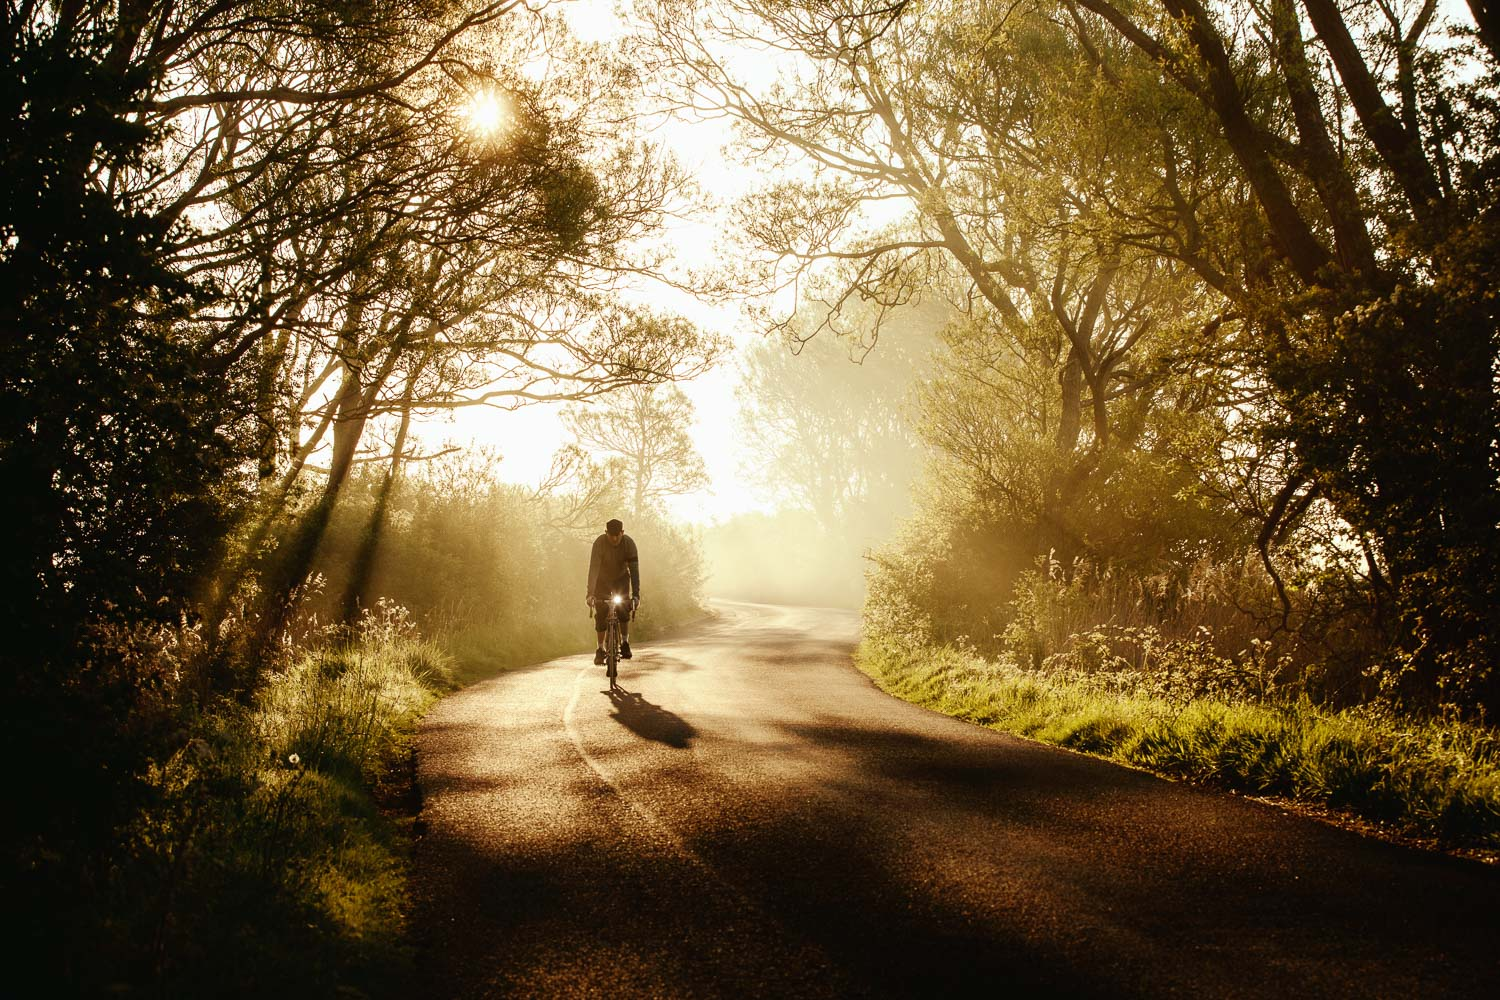 Backlit Cyclist at dawn on English country lane near Pevensey, East Sussex